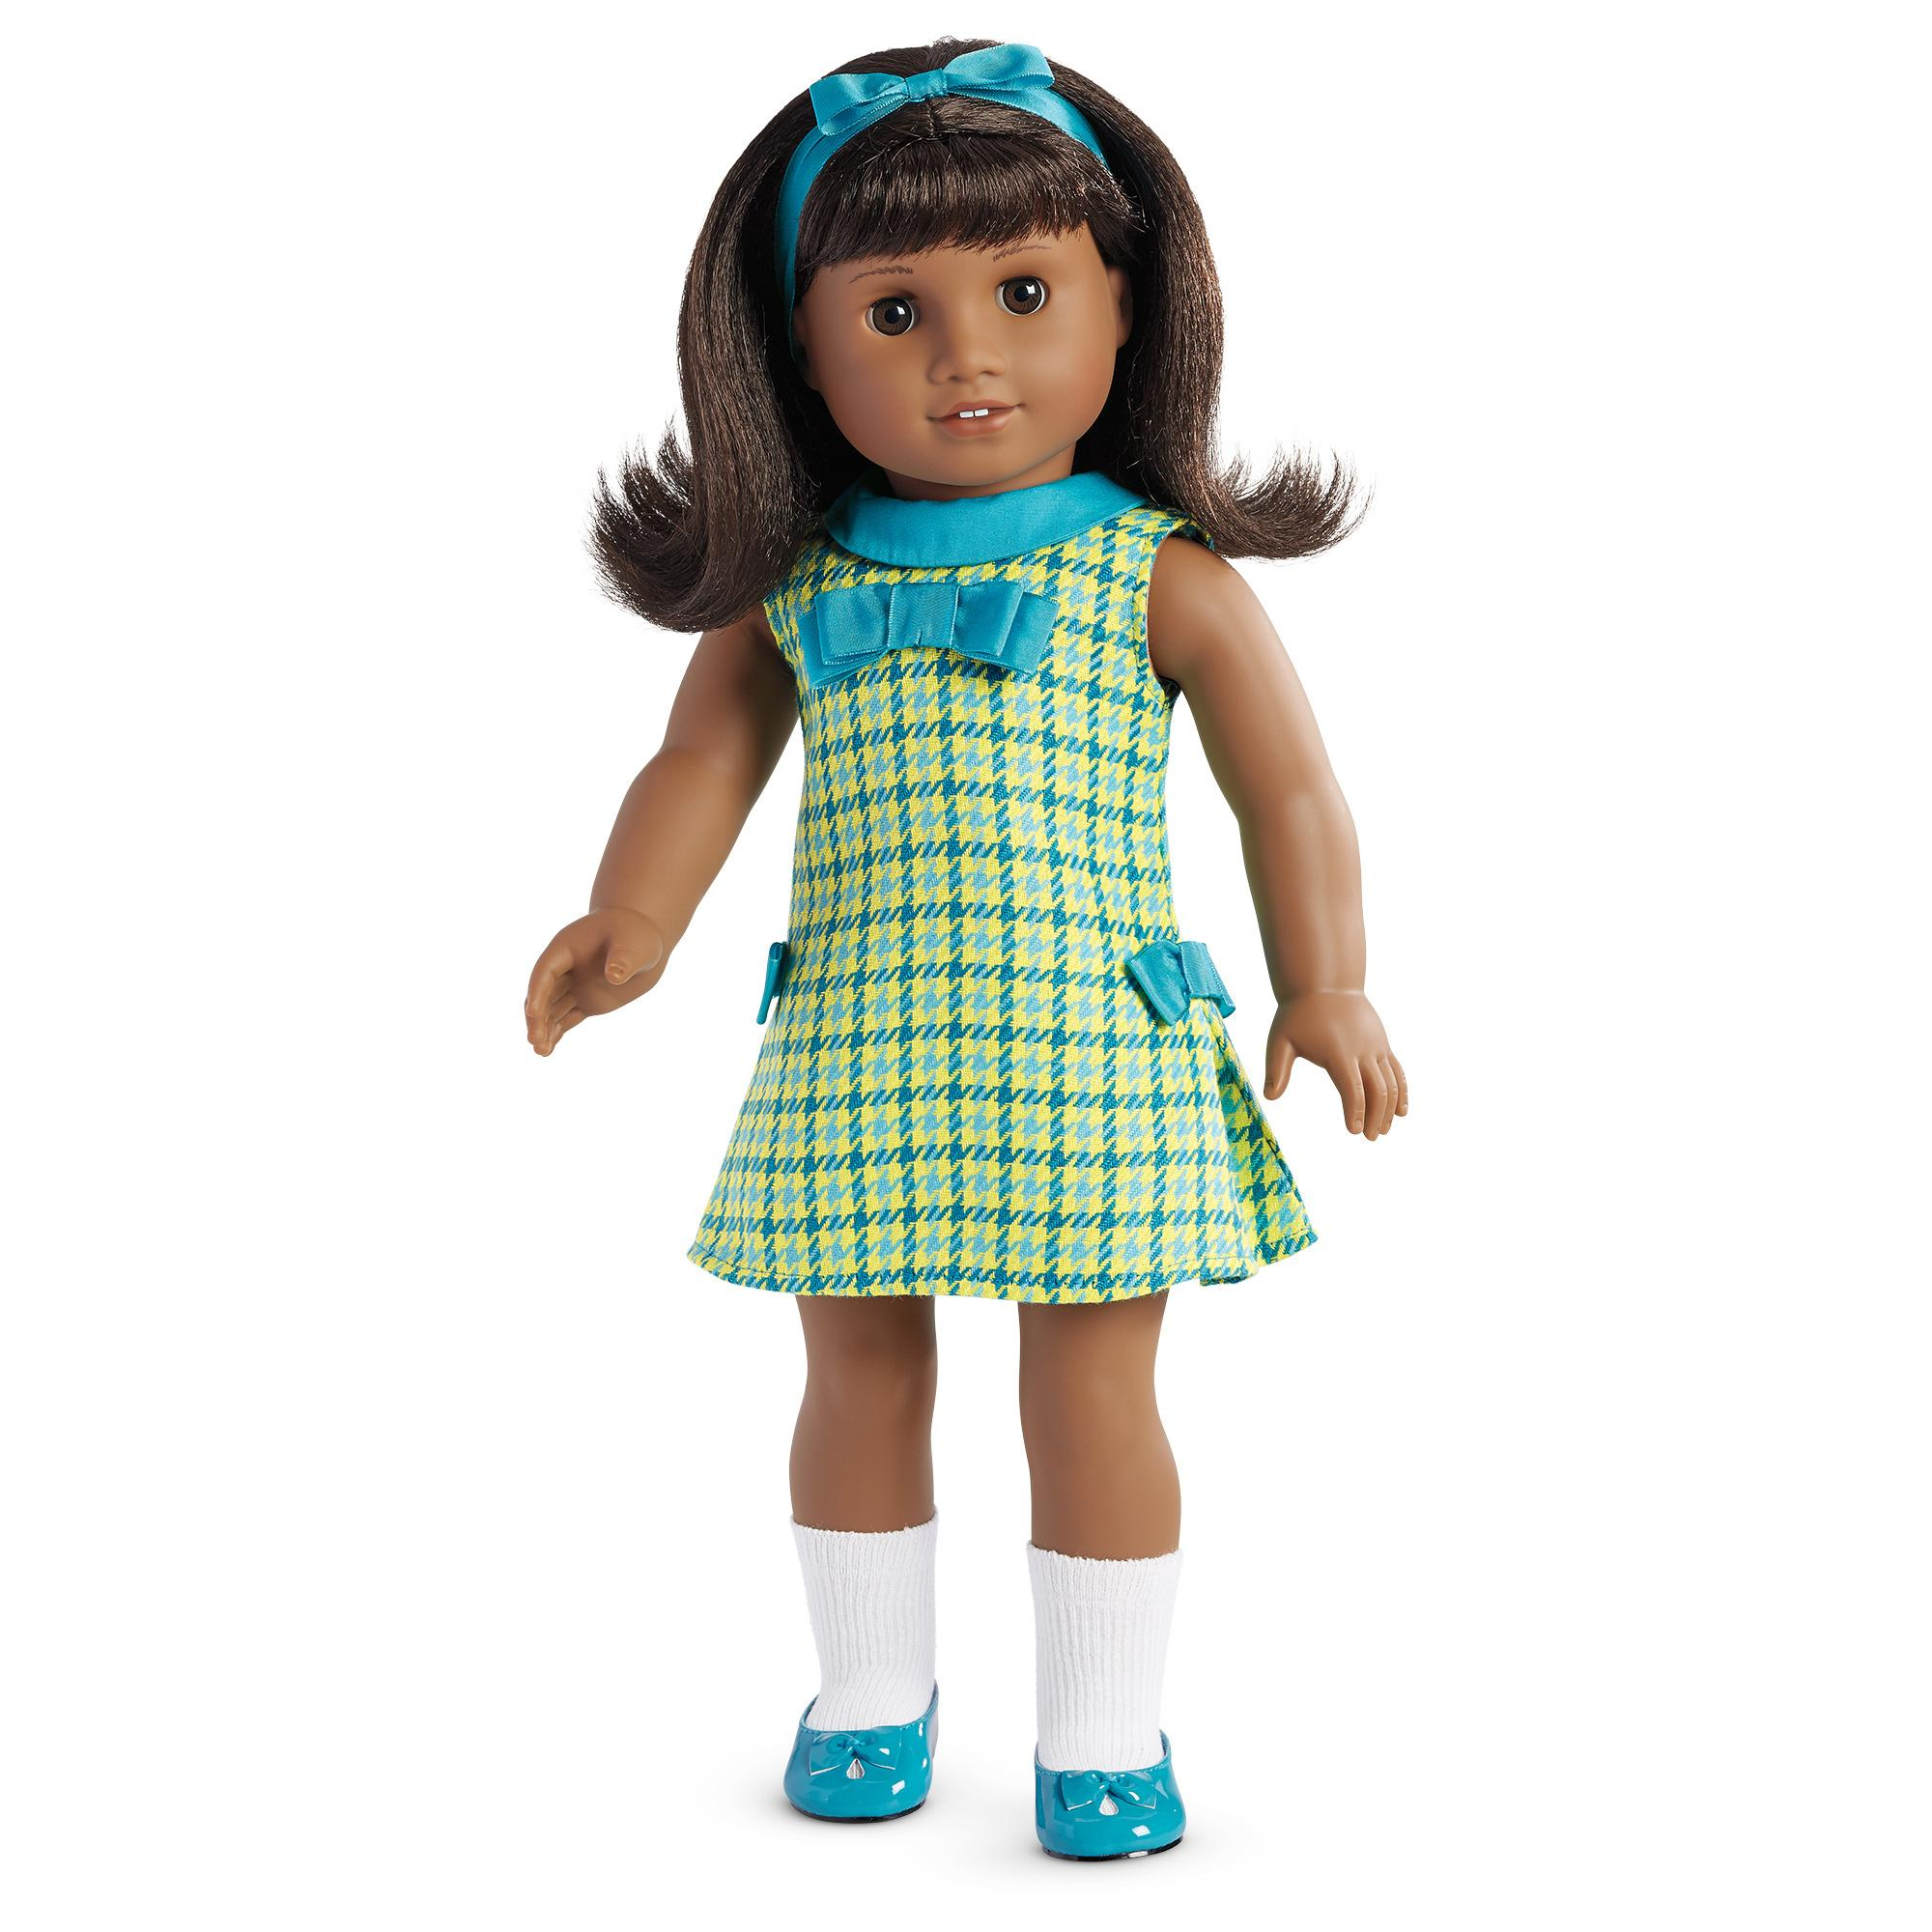 Amazon.com: American Girl Melody Doll and Book: Toys & Games